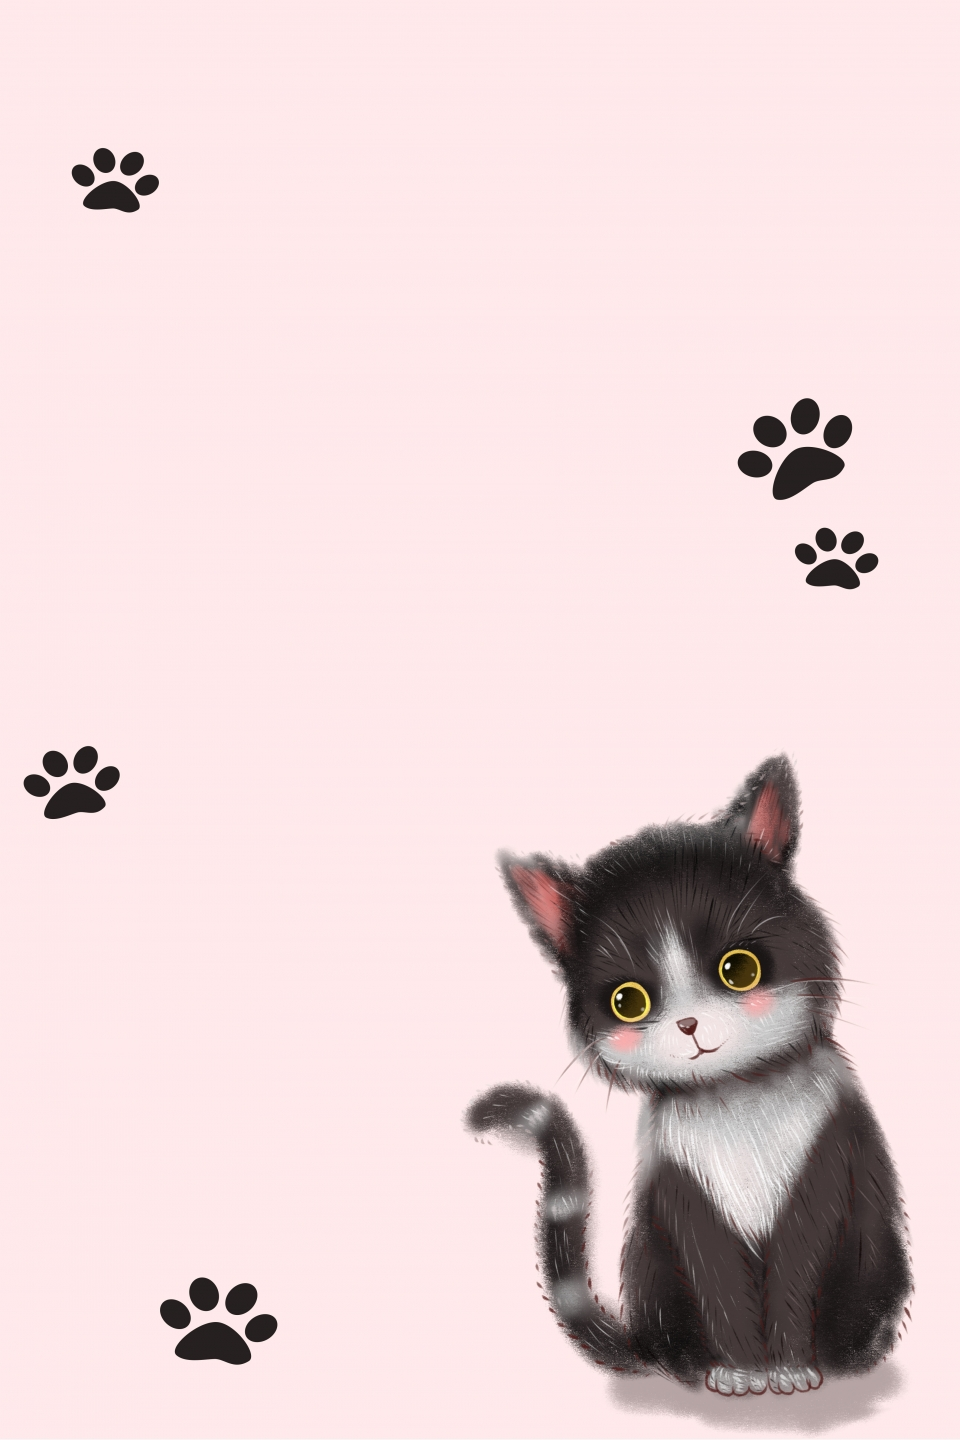 Cute Cat Background Material Art Cute Cat Background Image For Free Download